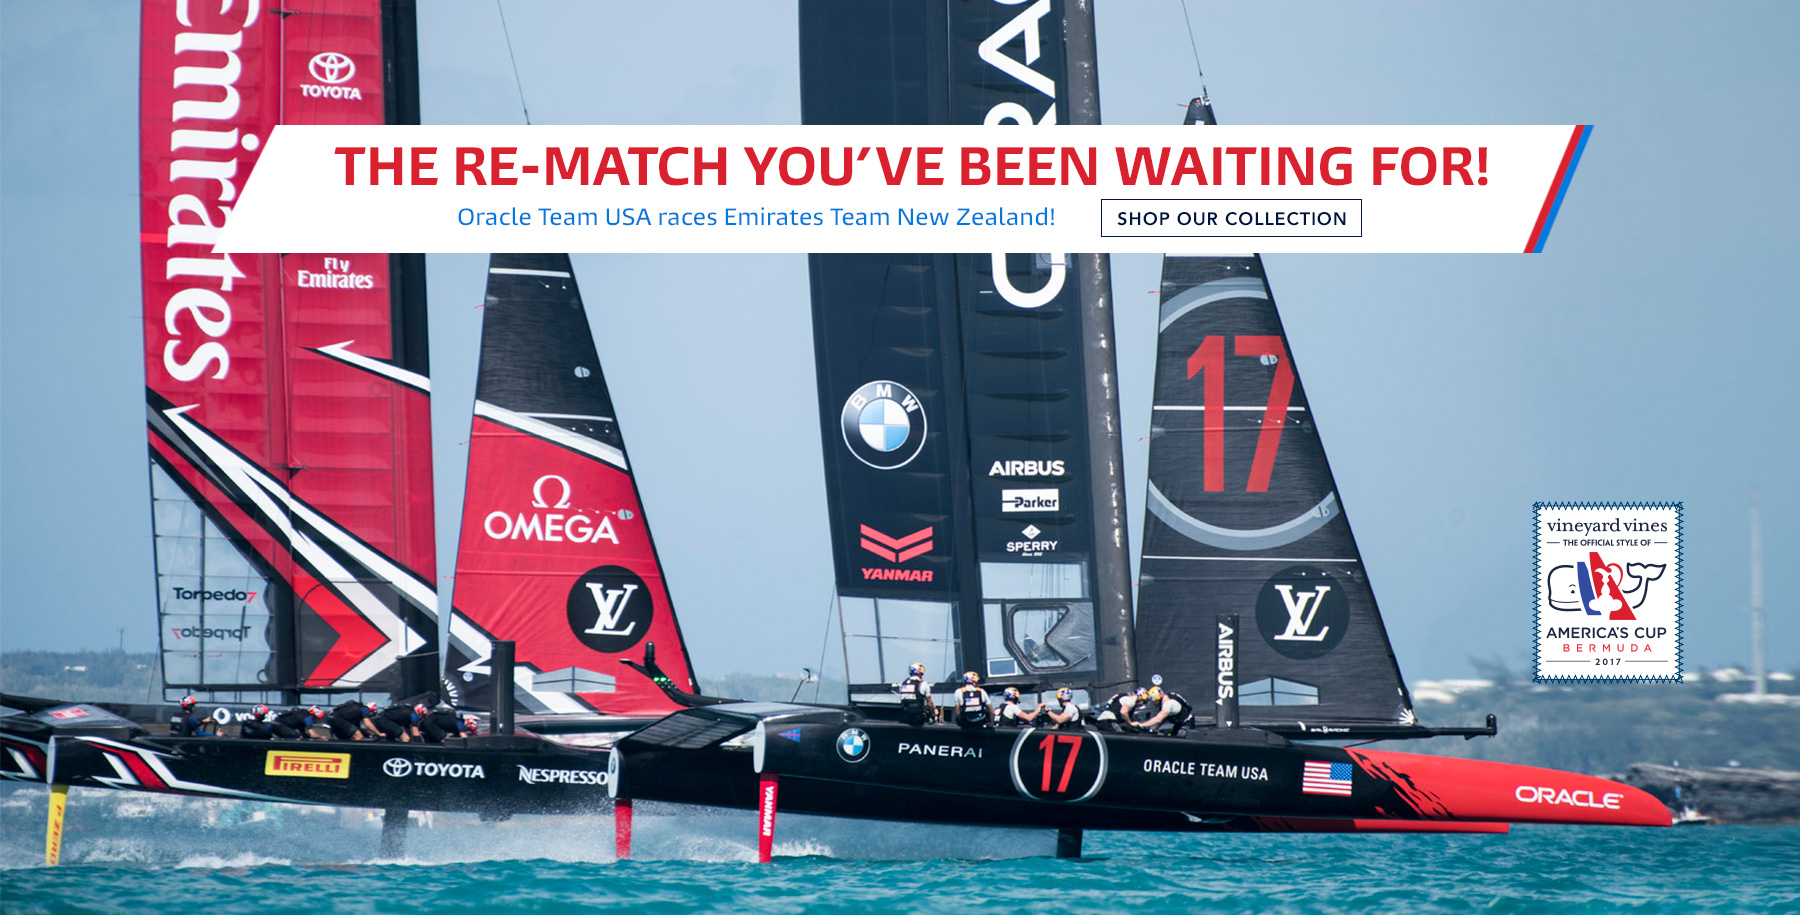 The re-match you've been waiting for! Oracle Team USA races Emirates Team New Zealand! Shop our collection.